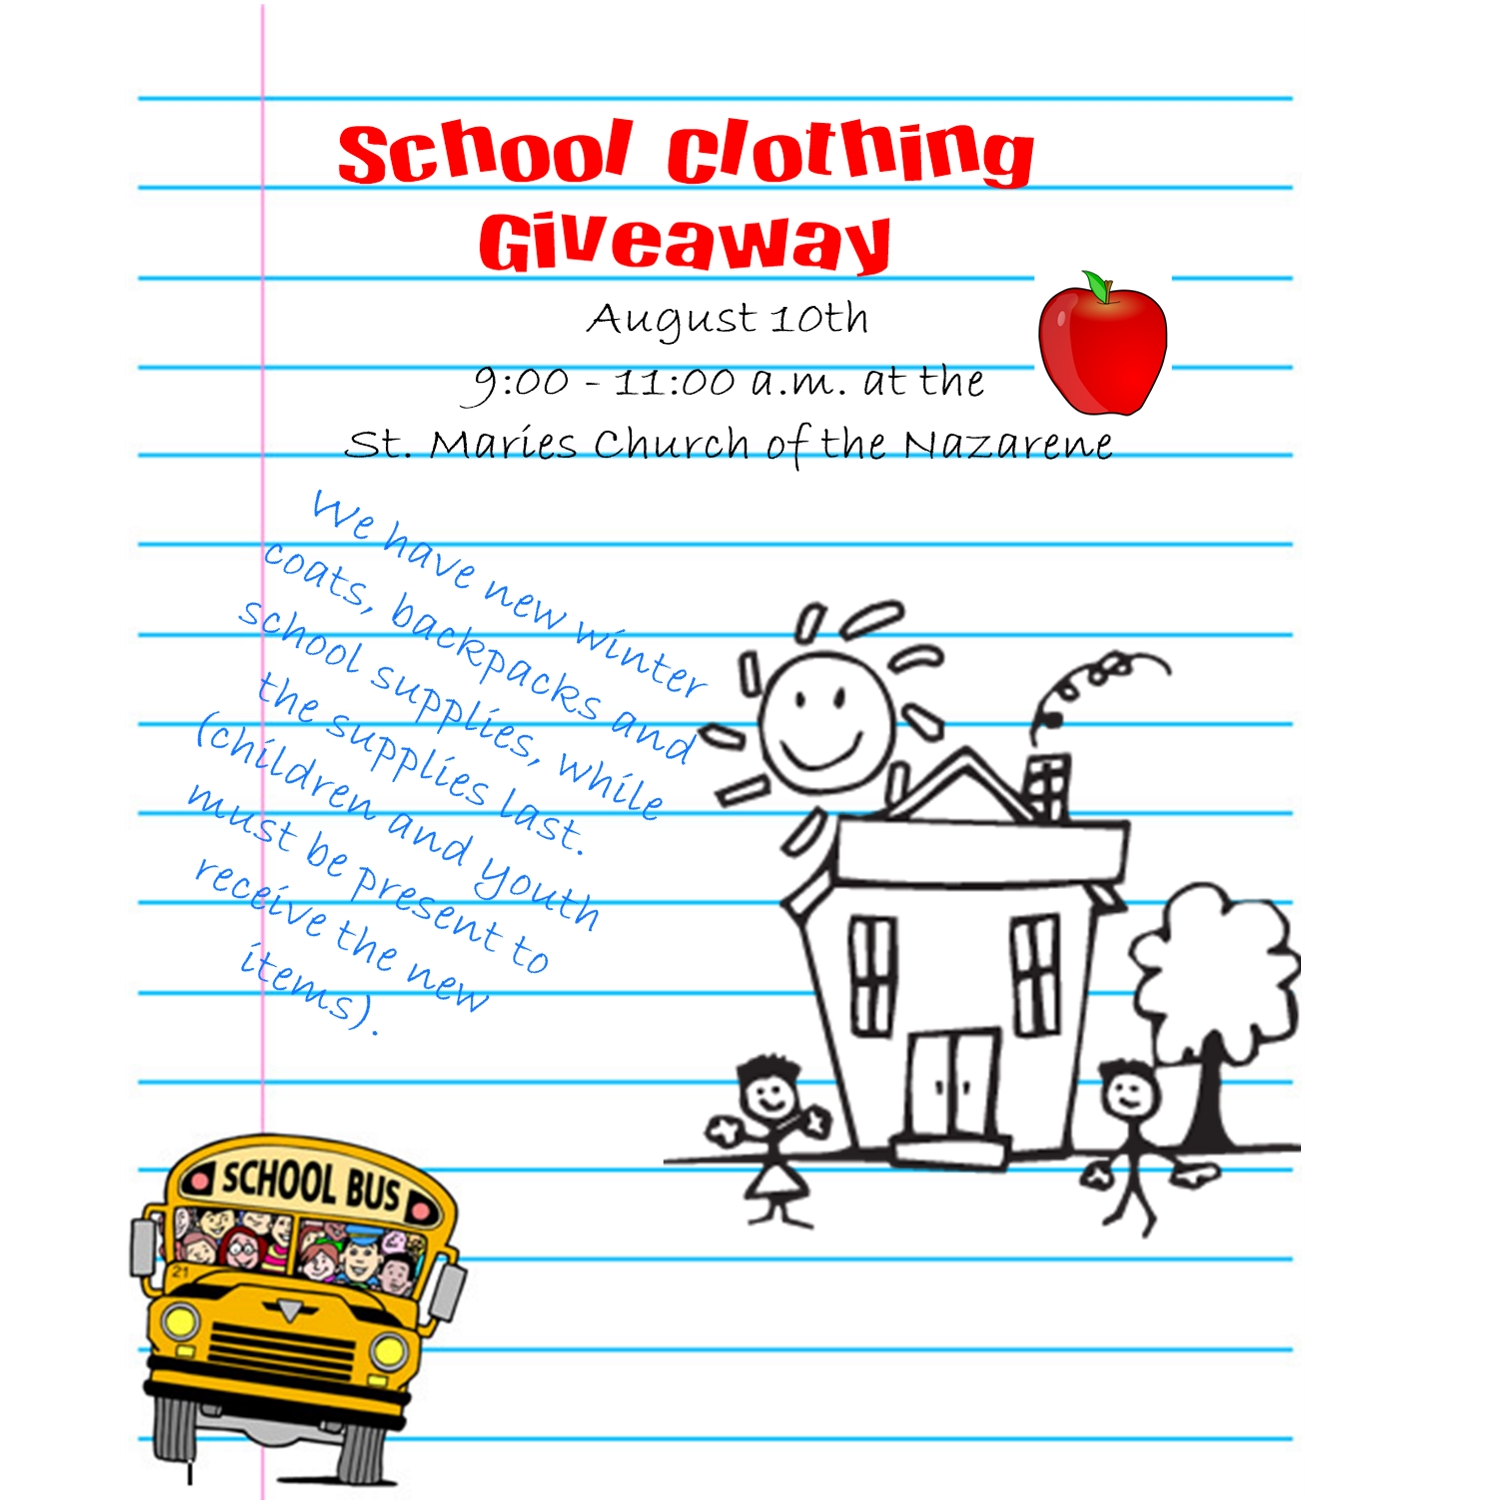 School Clothing Giveaway